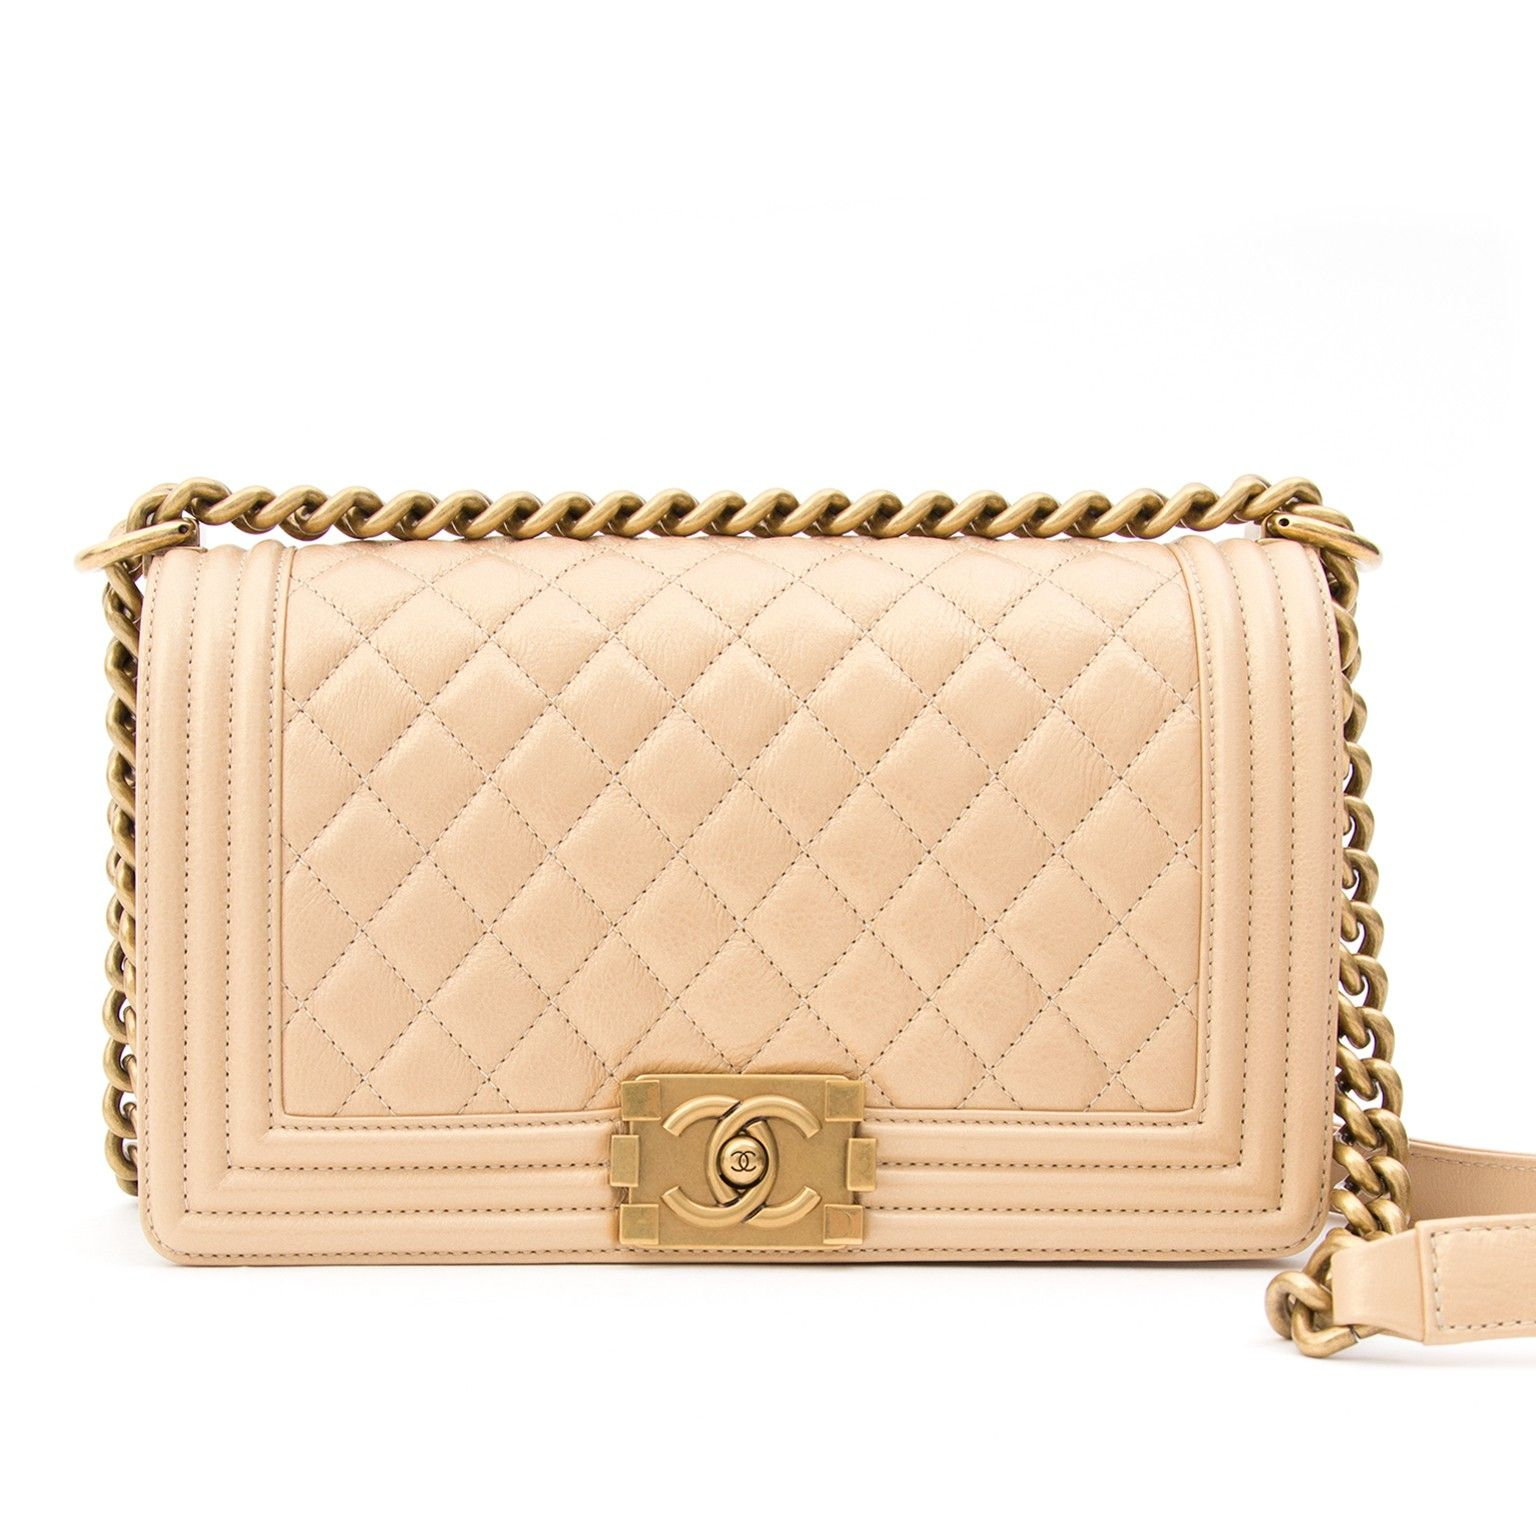 5c1feb4522d6e9 Chanel Pearl Beige Calfskin Medium Boy Bag | Chanel /D&G/Hermes ...